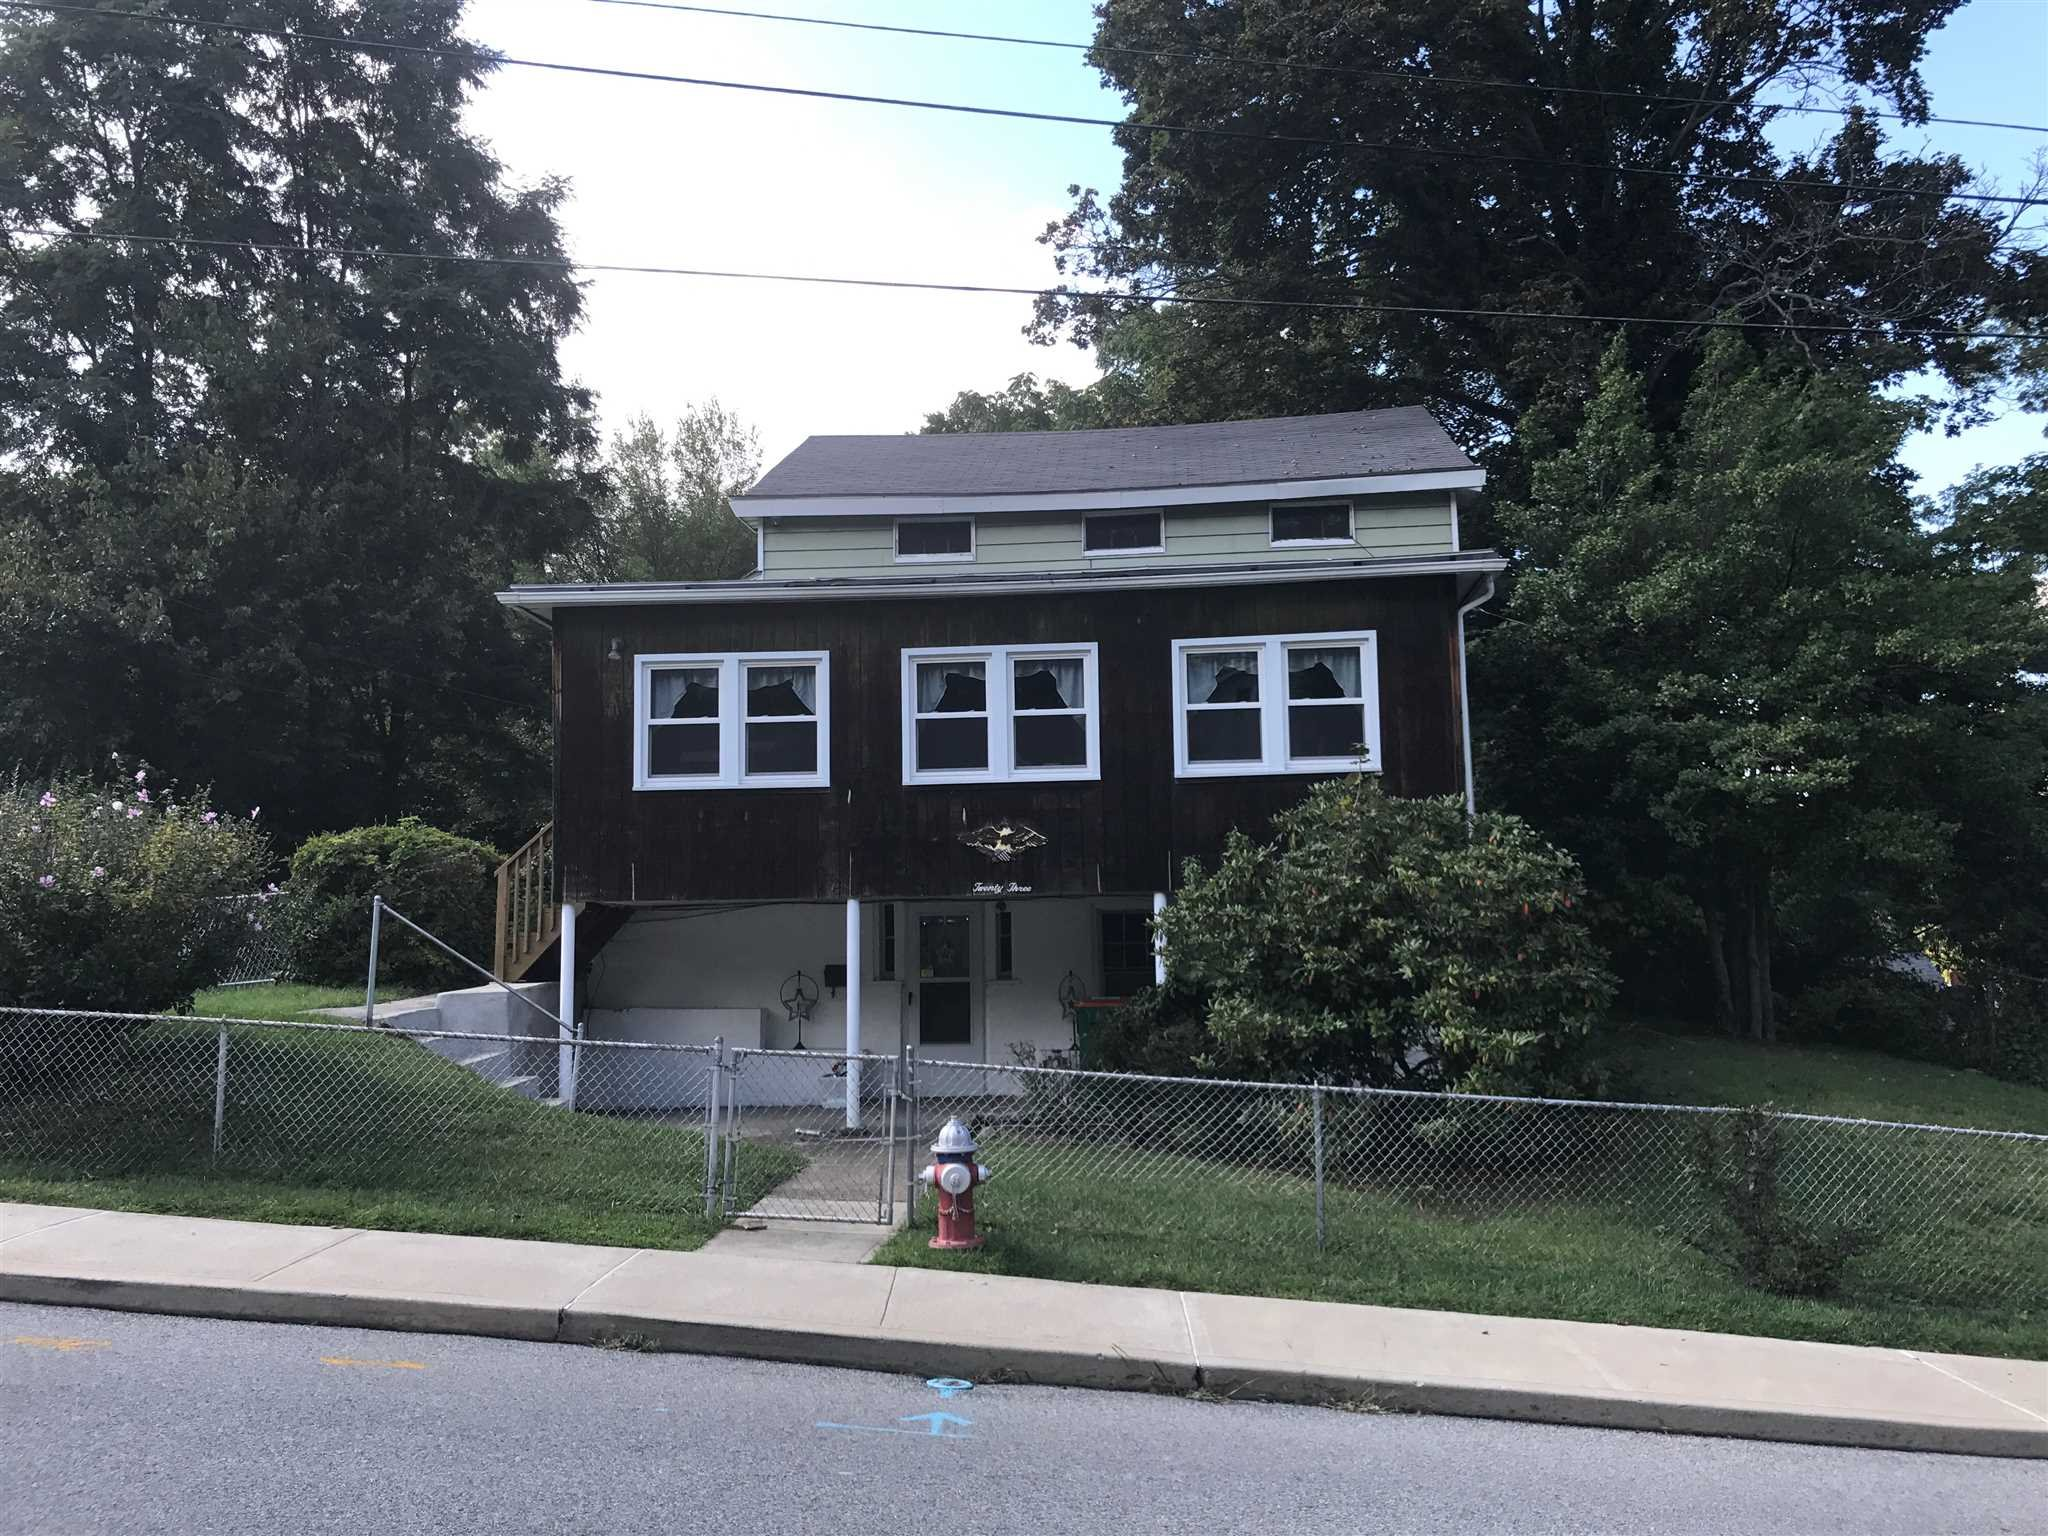 Single Family Home for Sale at 23 RUSSELL Avenue 23 RUSSELL Avenue Beacon, New York 12508 United States